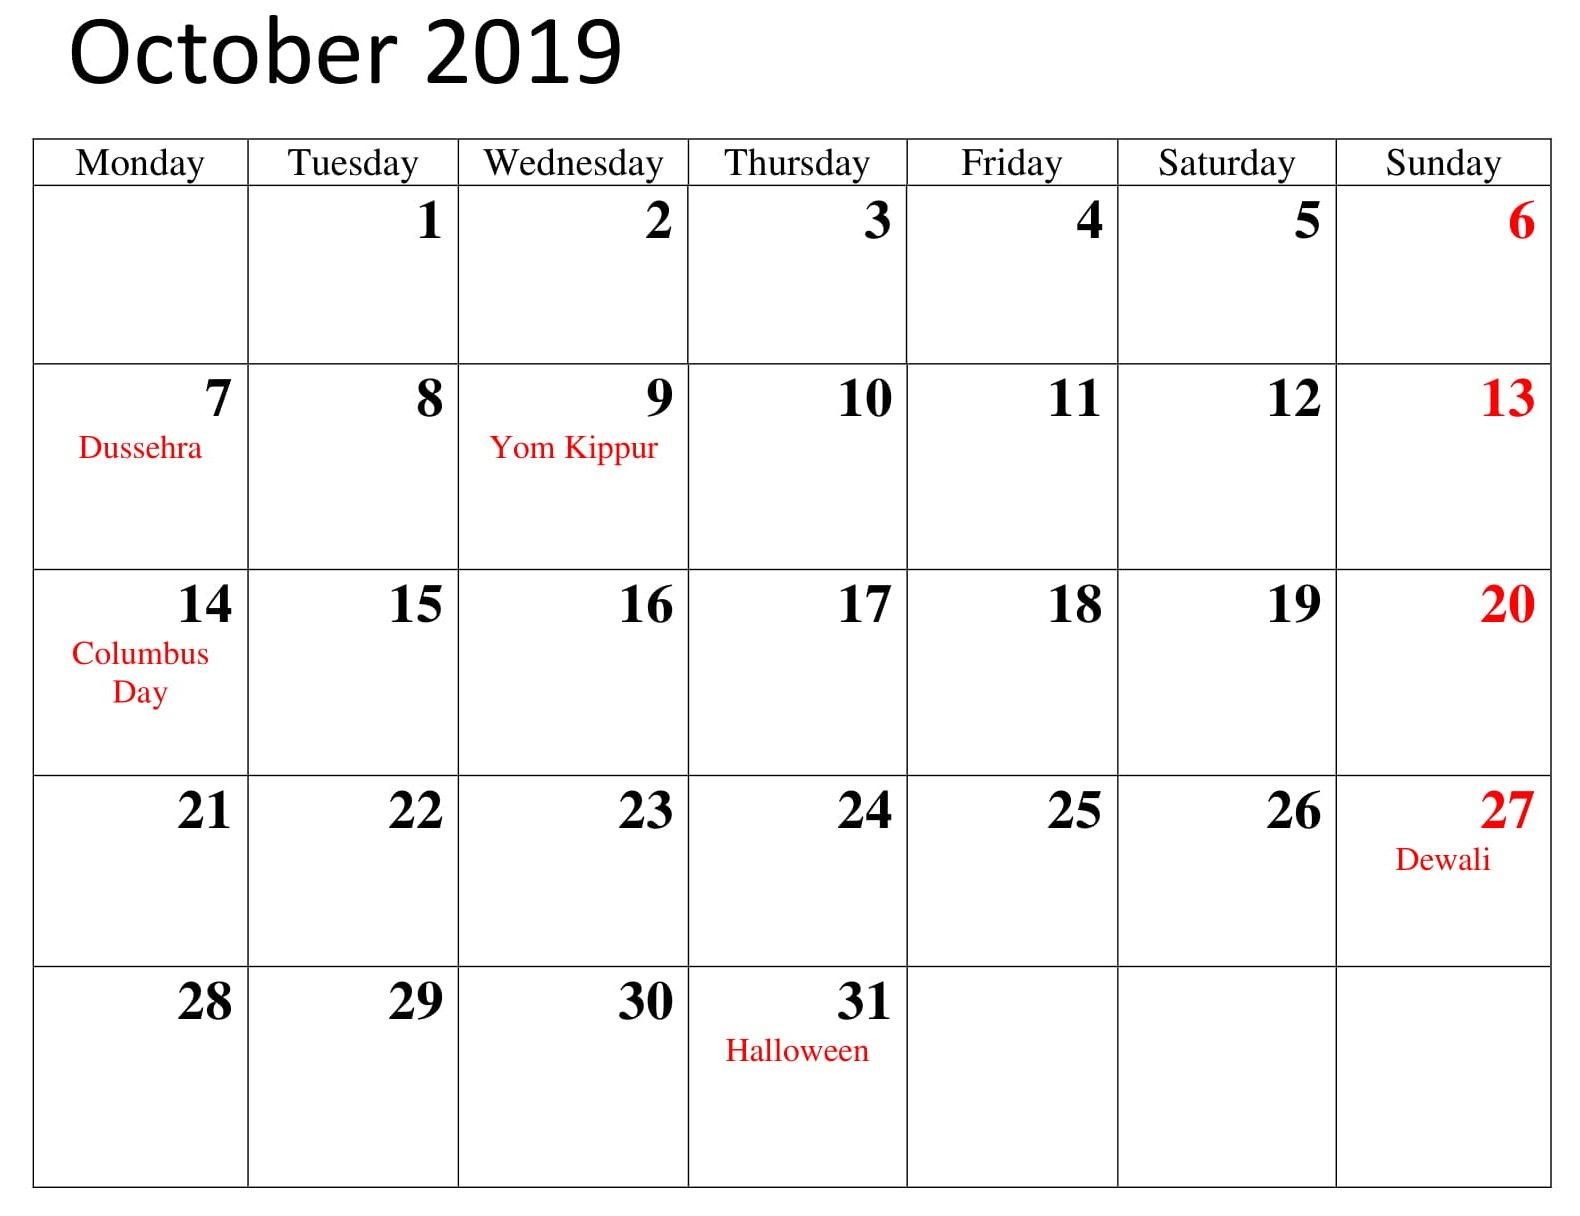 image about Calendar Printable With Holidays named Oct 2019 Calendar with Vacations Printable Template